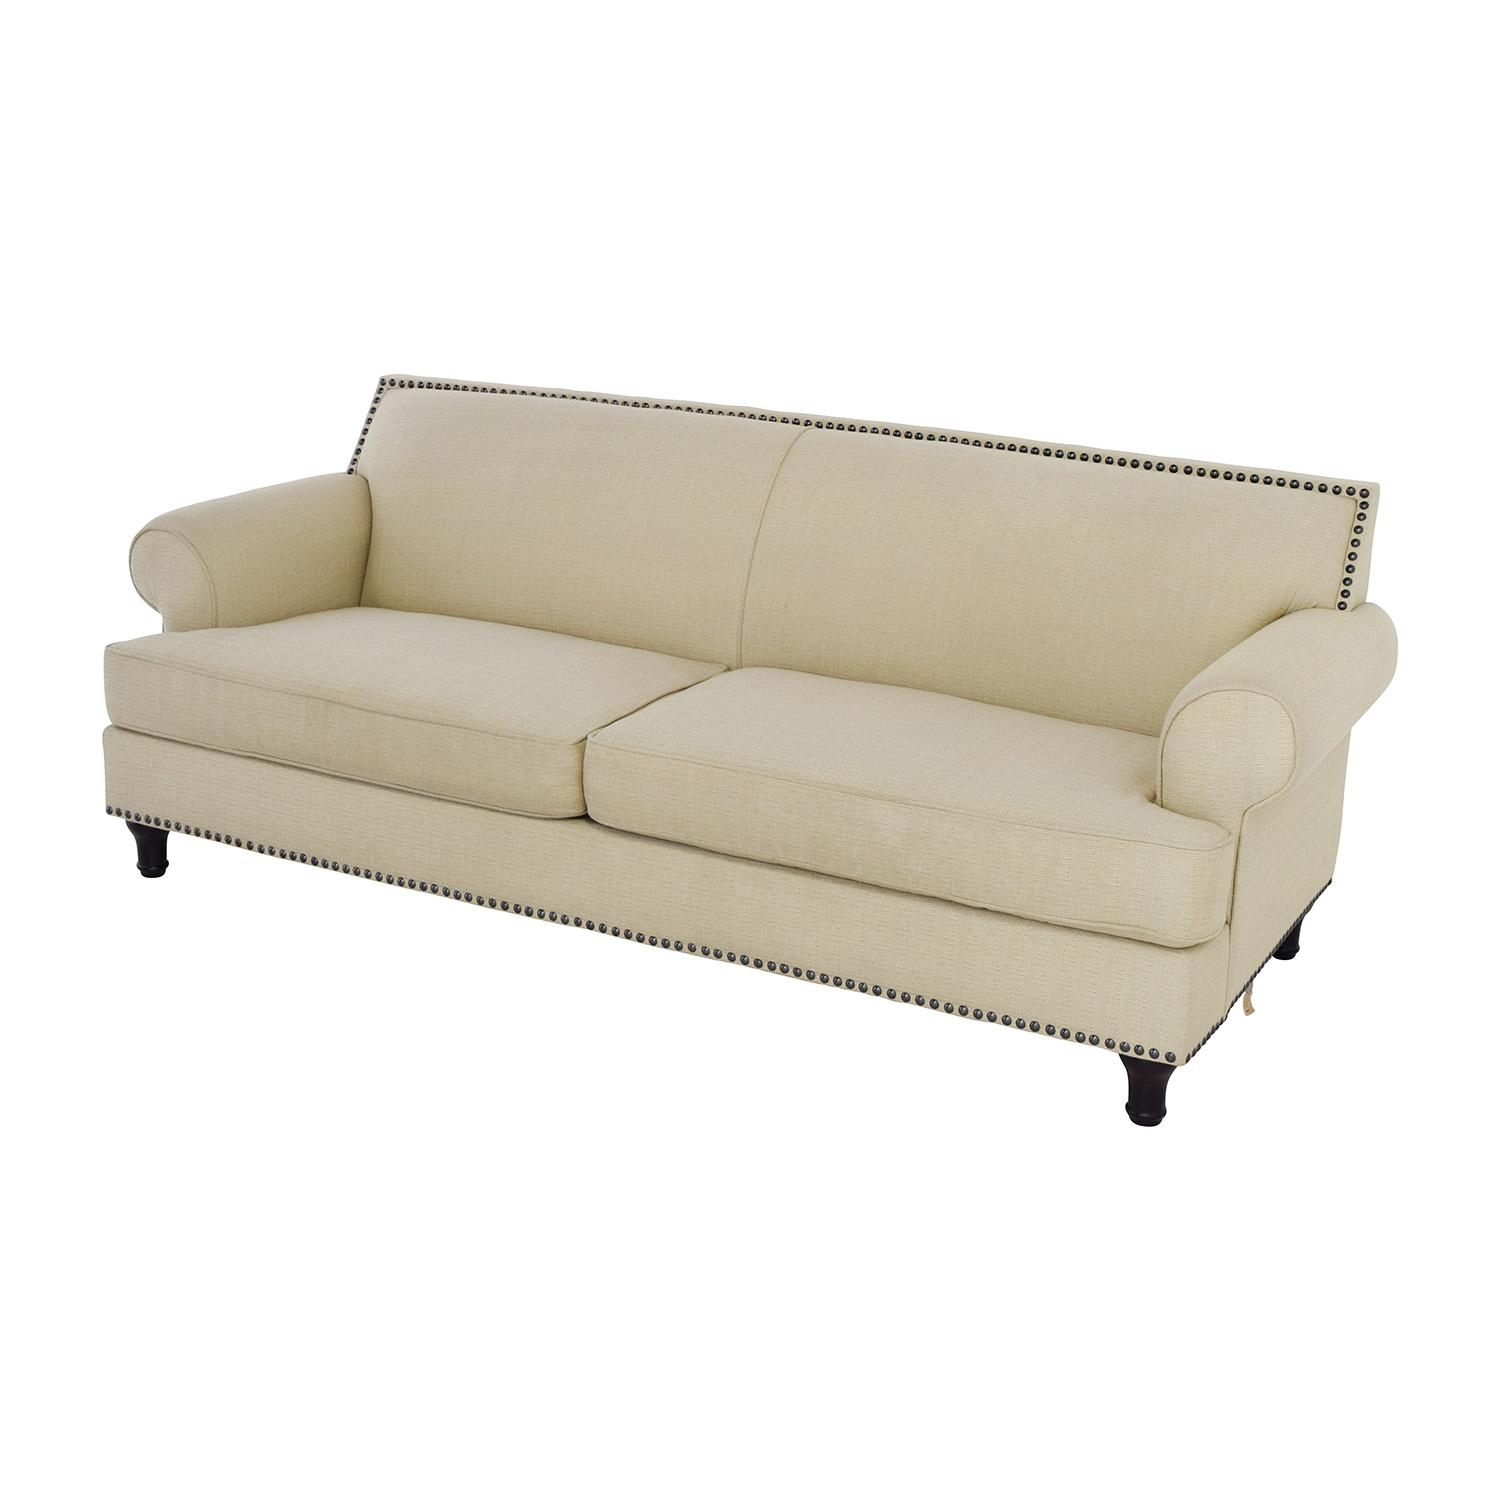 48% Off – Pier 1 Pier 1 Carmen Tan Couch With Studs / Sofas In Pier 1 Carmen Sofas (View 6 of 20)